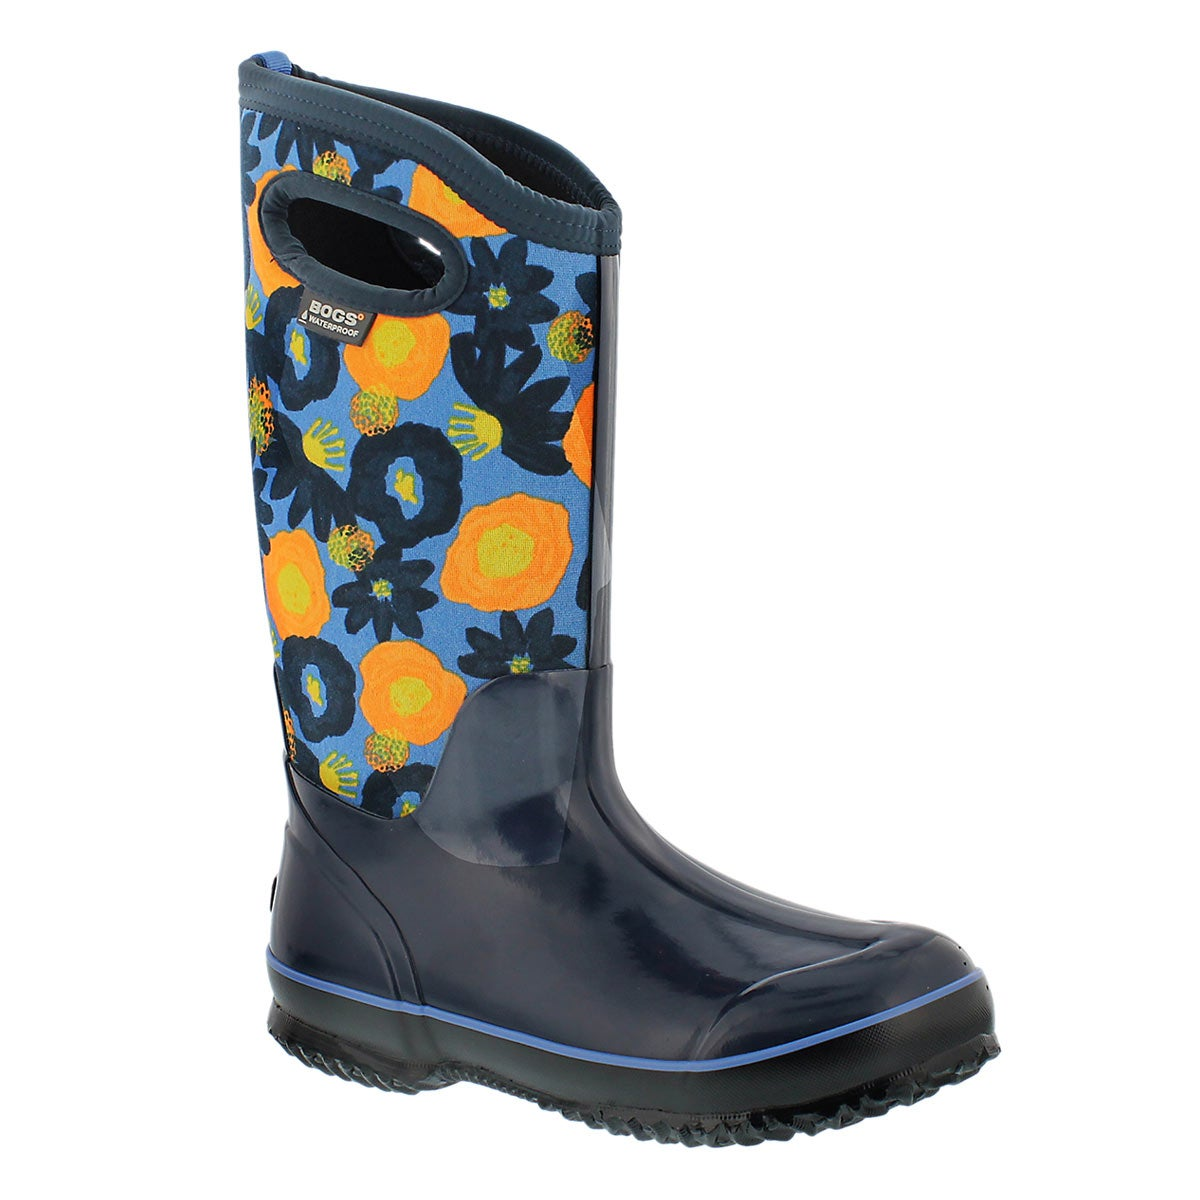 Lds Watercolor Tall blue multi wtpf boot